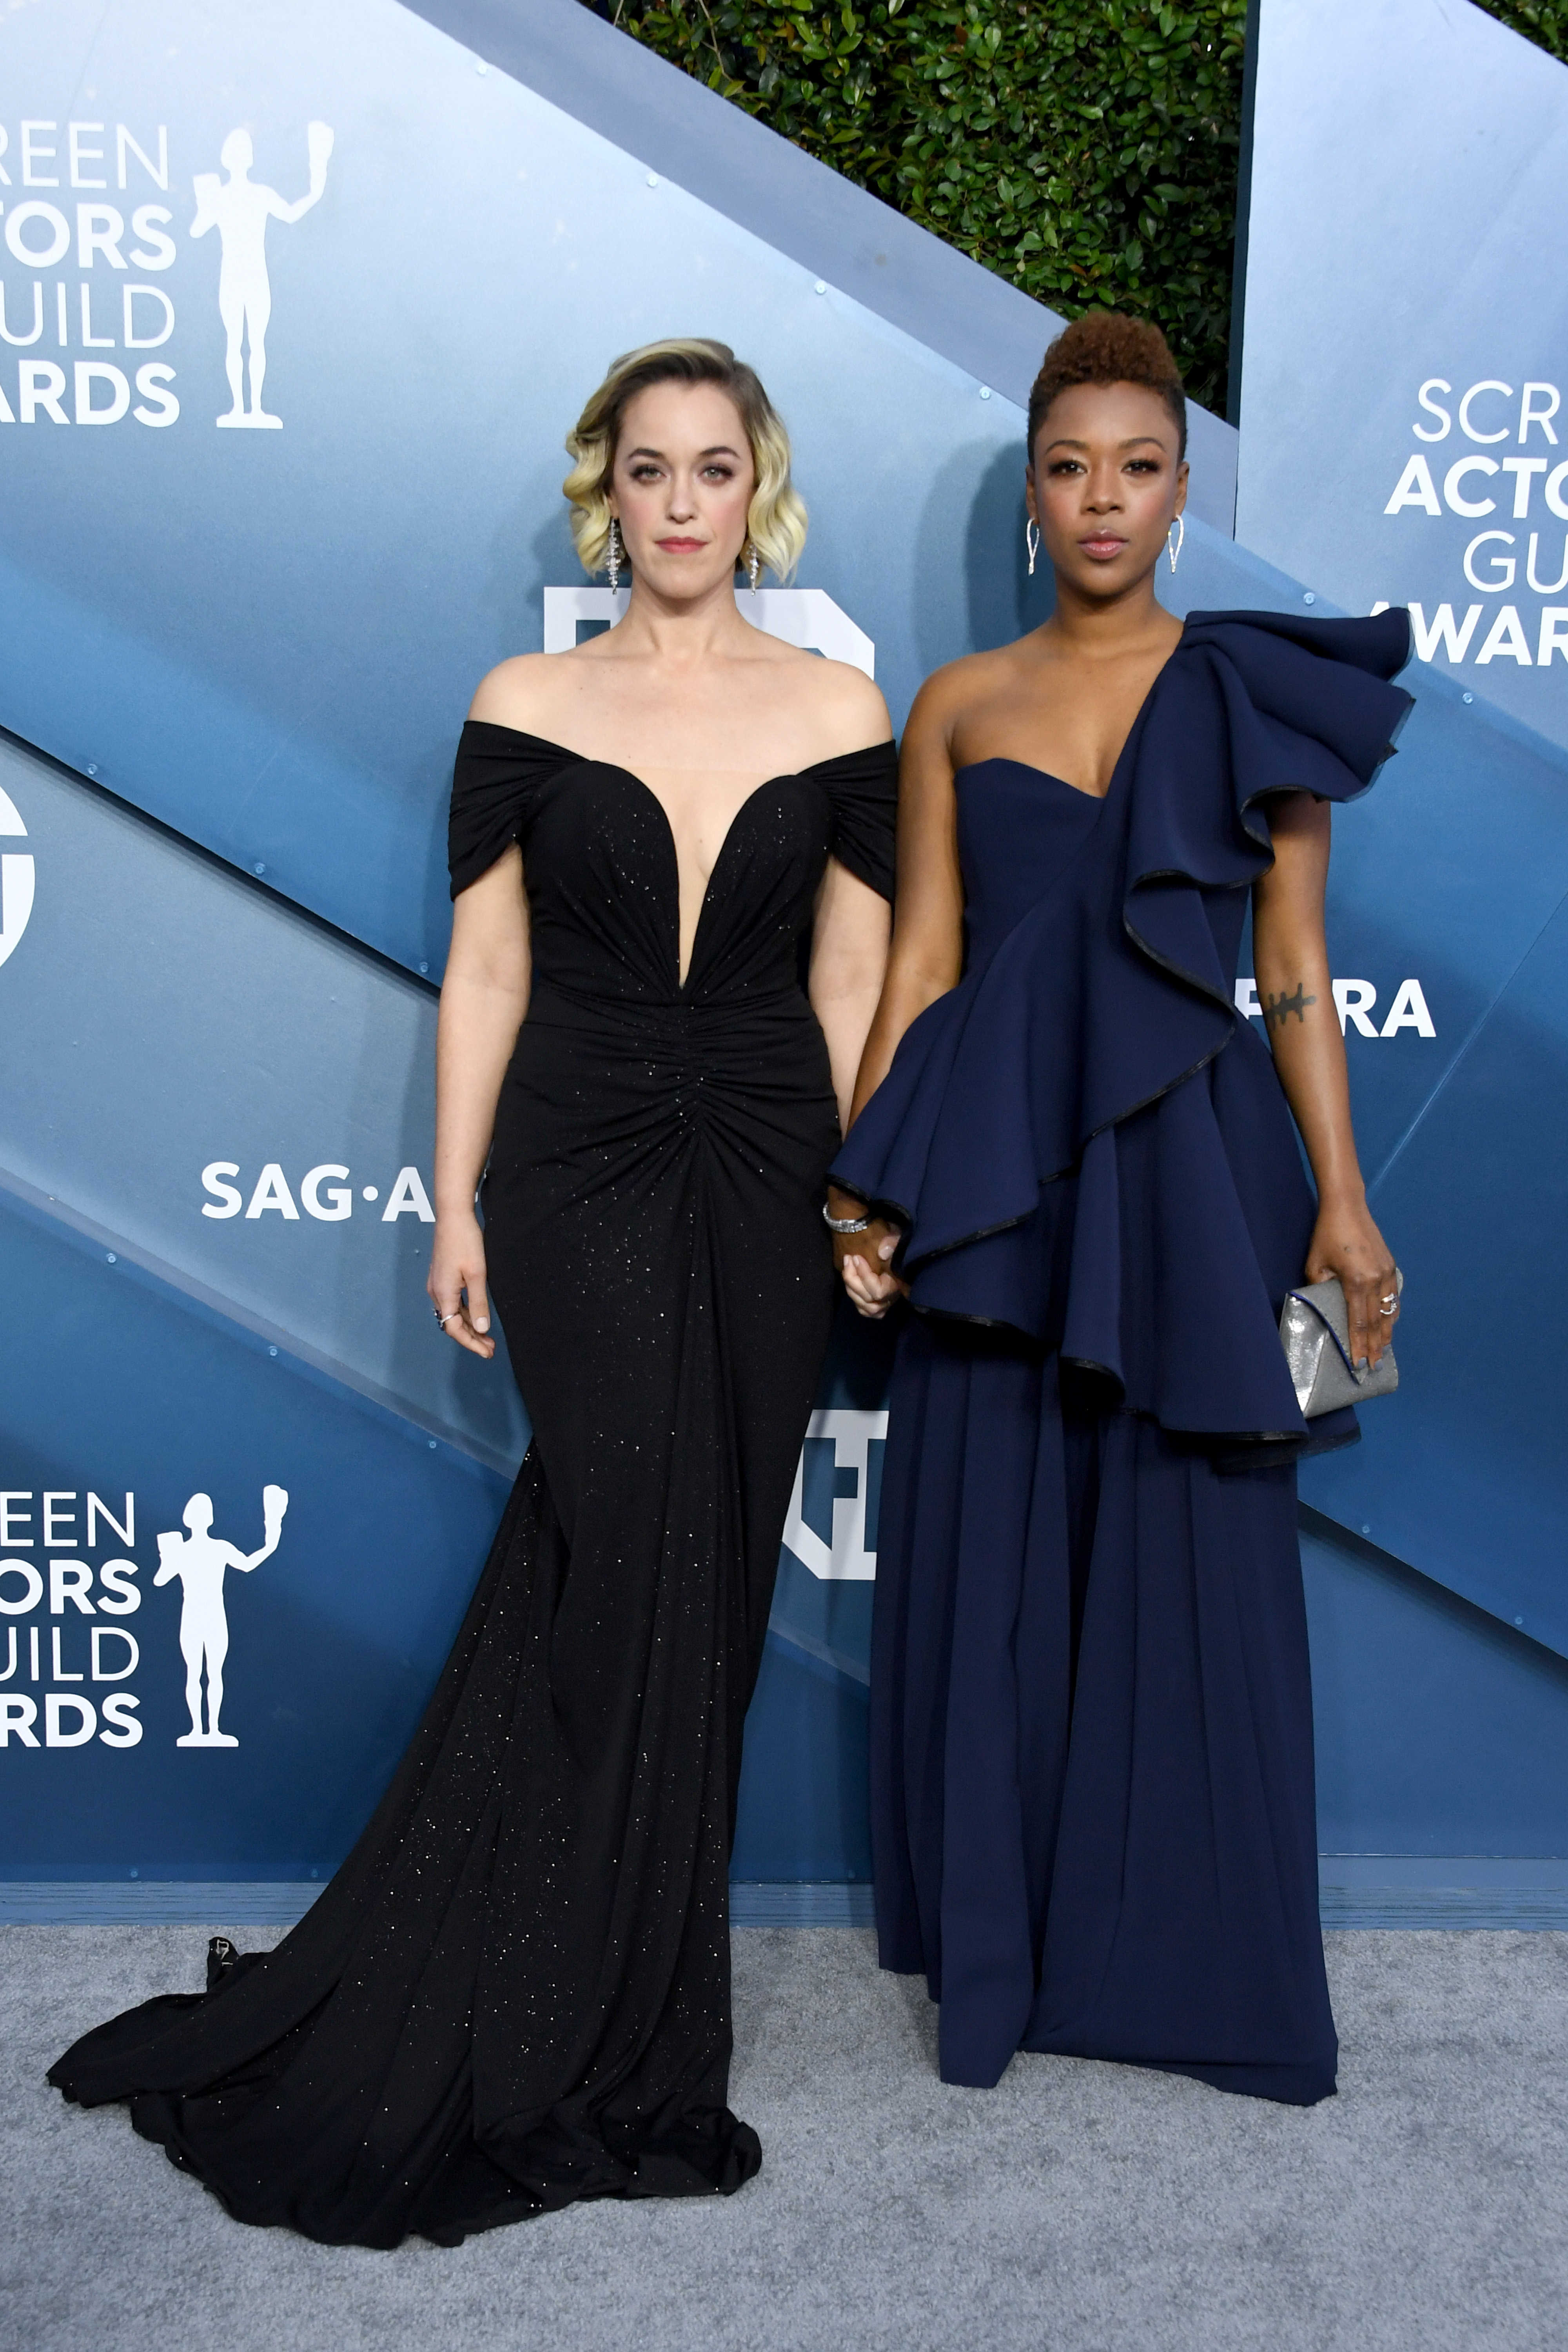 LOS ANGELES, CALIFORNIA - JANUARY 19: (L-R) Lauren Morelli and Samira Wiley attend the 26th Annual Screen ActorsGuild Awards at The Shrine Auditorium on January 19, 2020 in Los Angeles, California. (Photo by Jon Kopaloff/Getty Images)